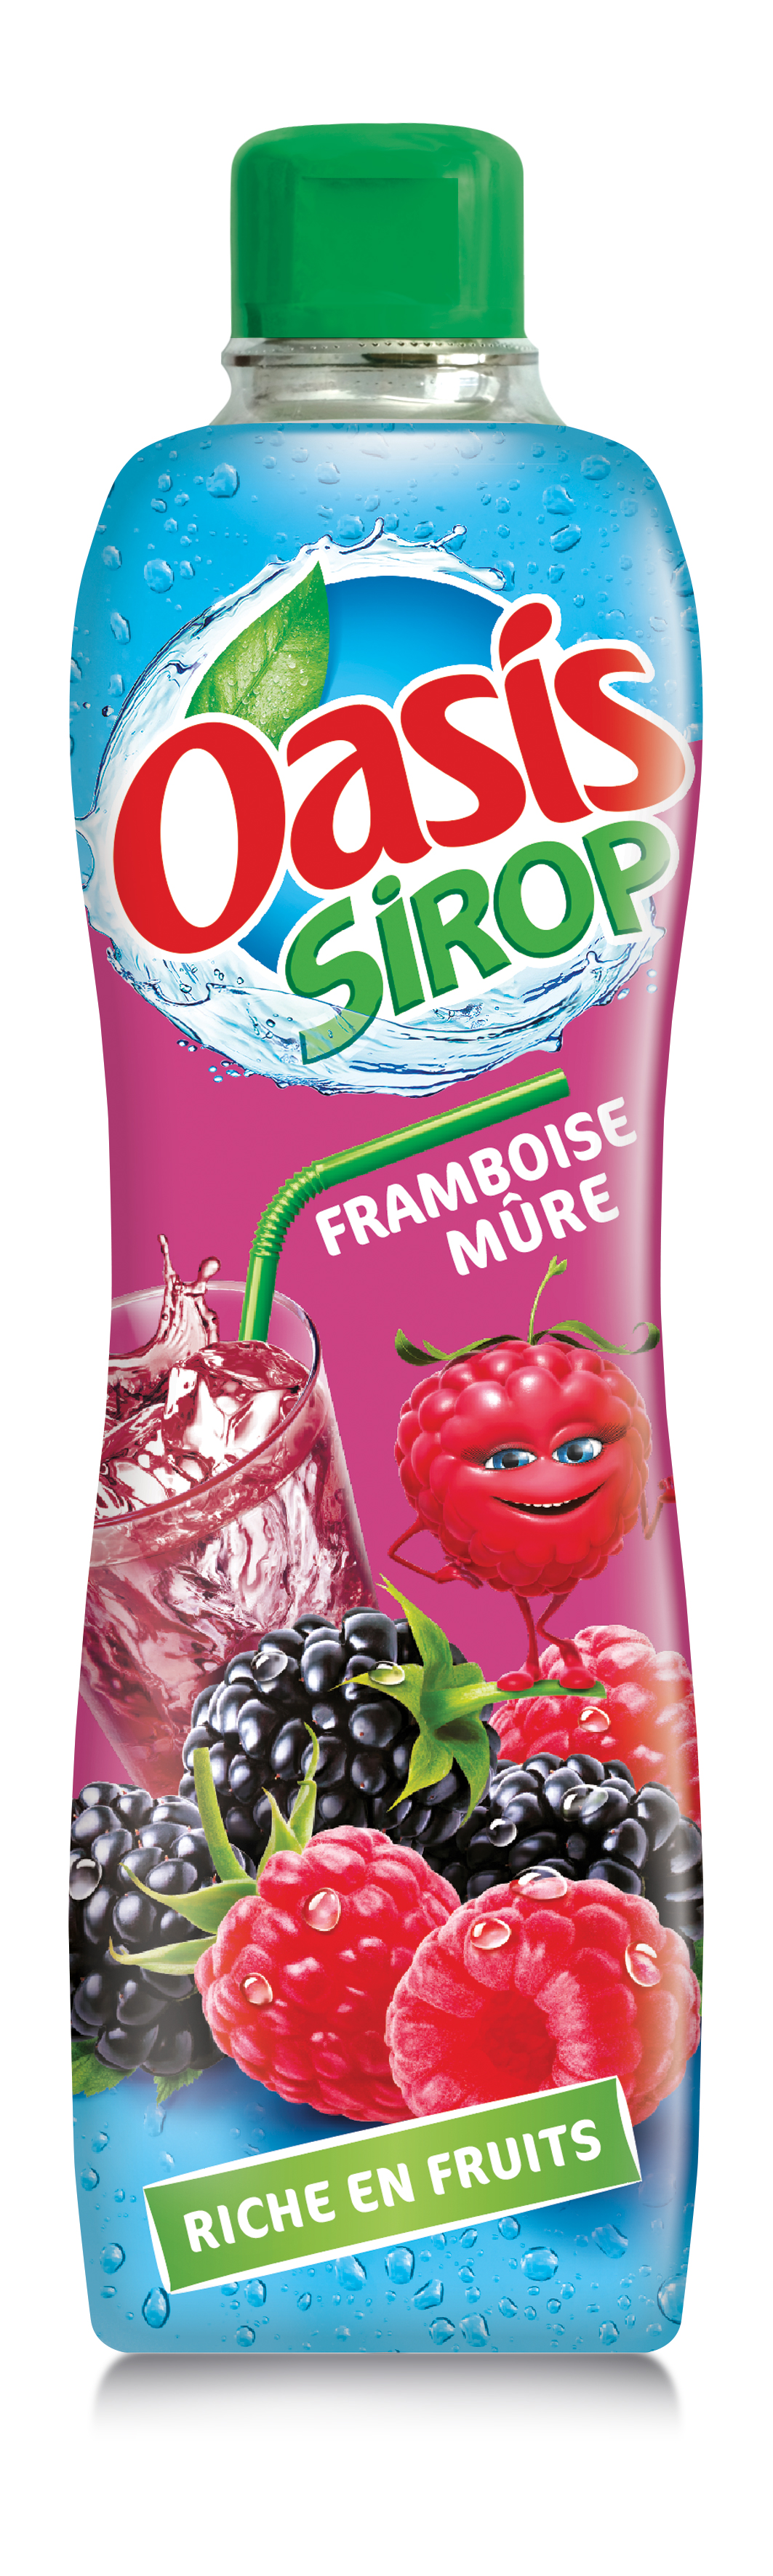 Framboise mure - Oasis lance sa première gamme de sirops